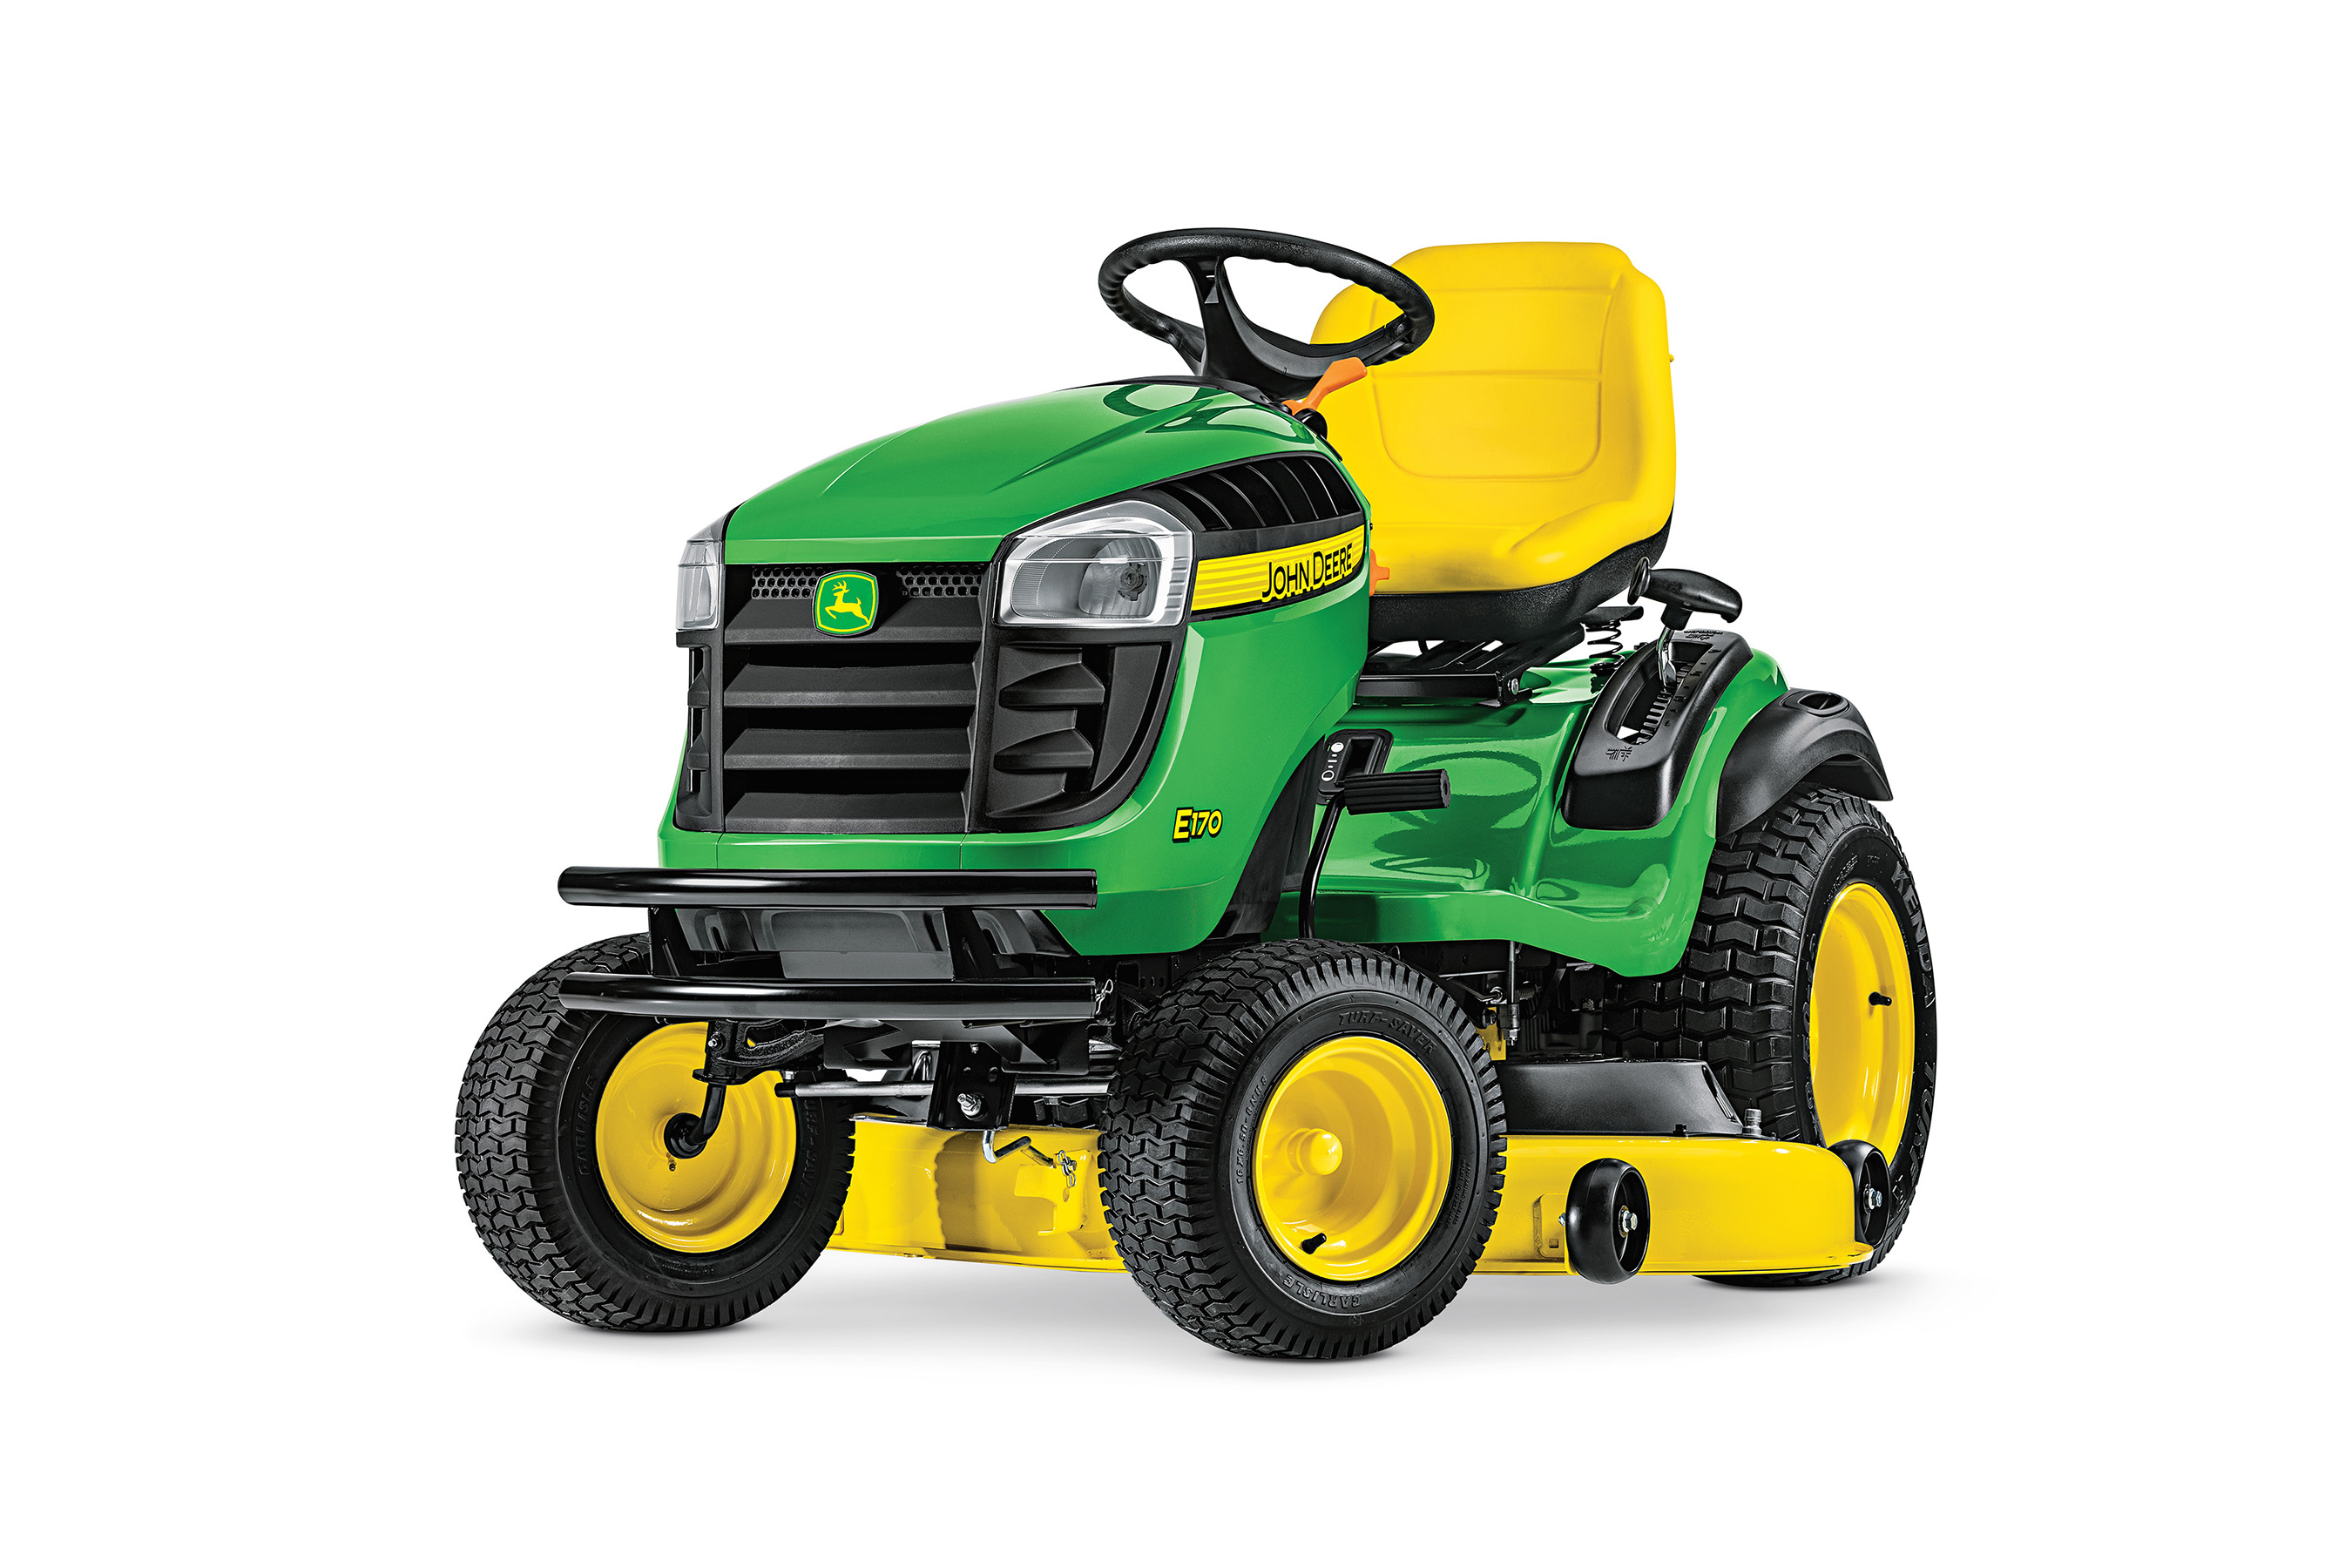 John Deere Provides Comfort and Ease of Use with New Lawn ...